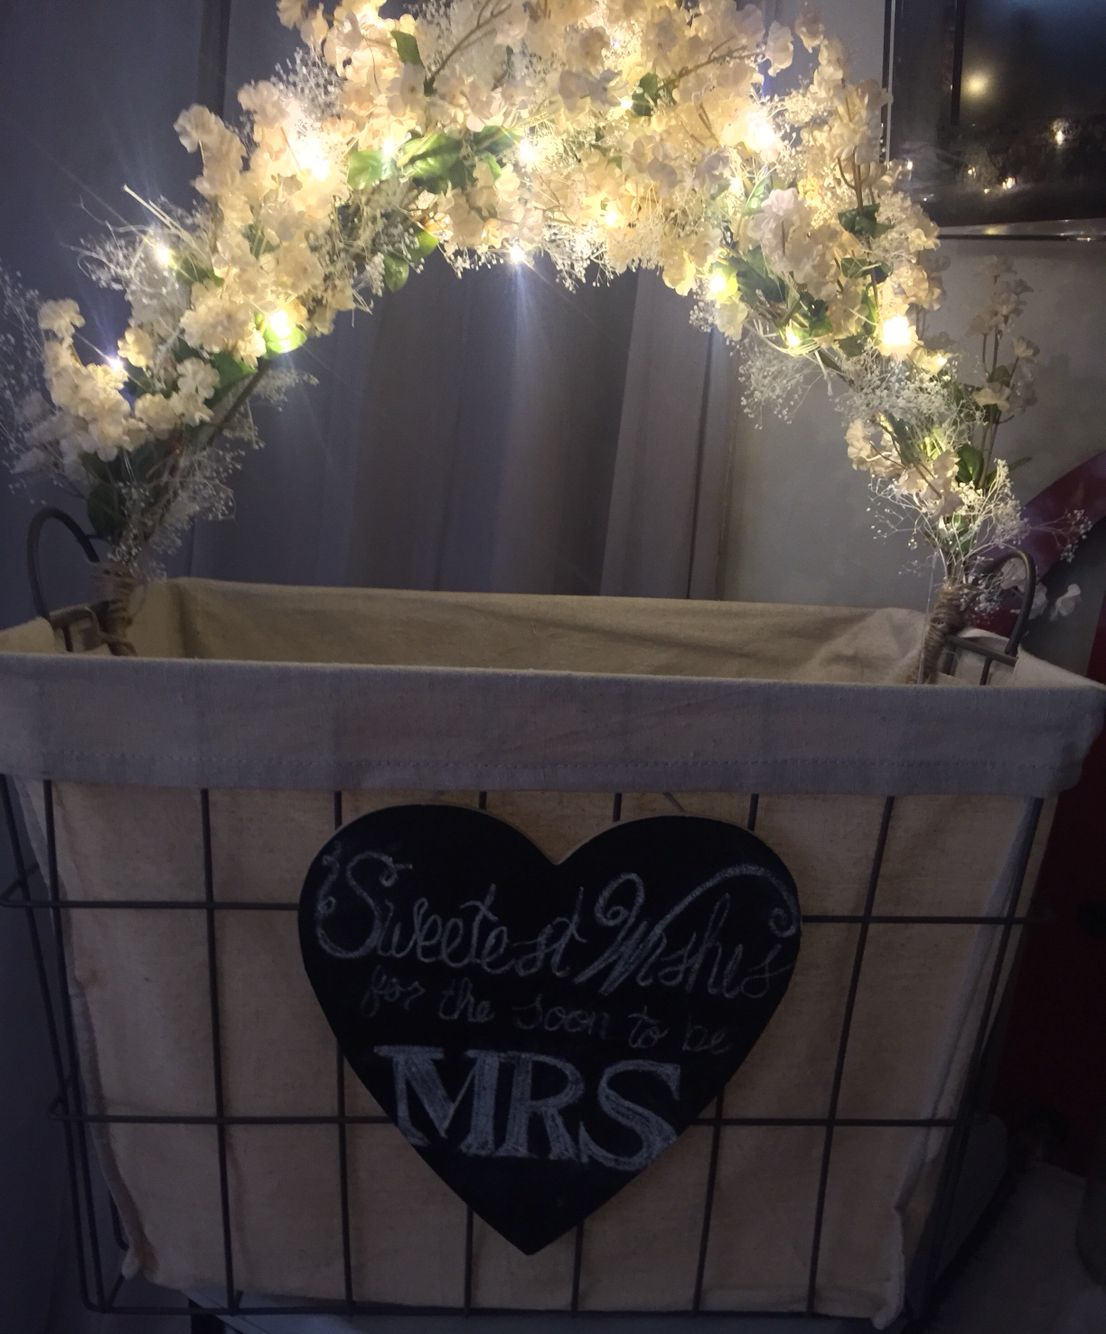 diy wishing well for bridal shower david tutera battery operated lights heart says sweetest wishes for the soon to be mrs bought a medium size basket at